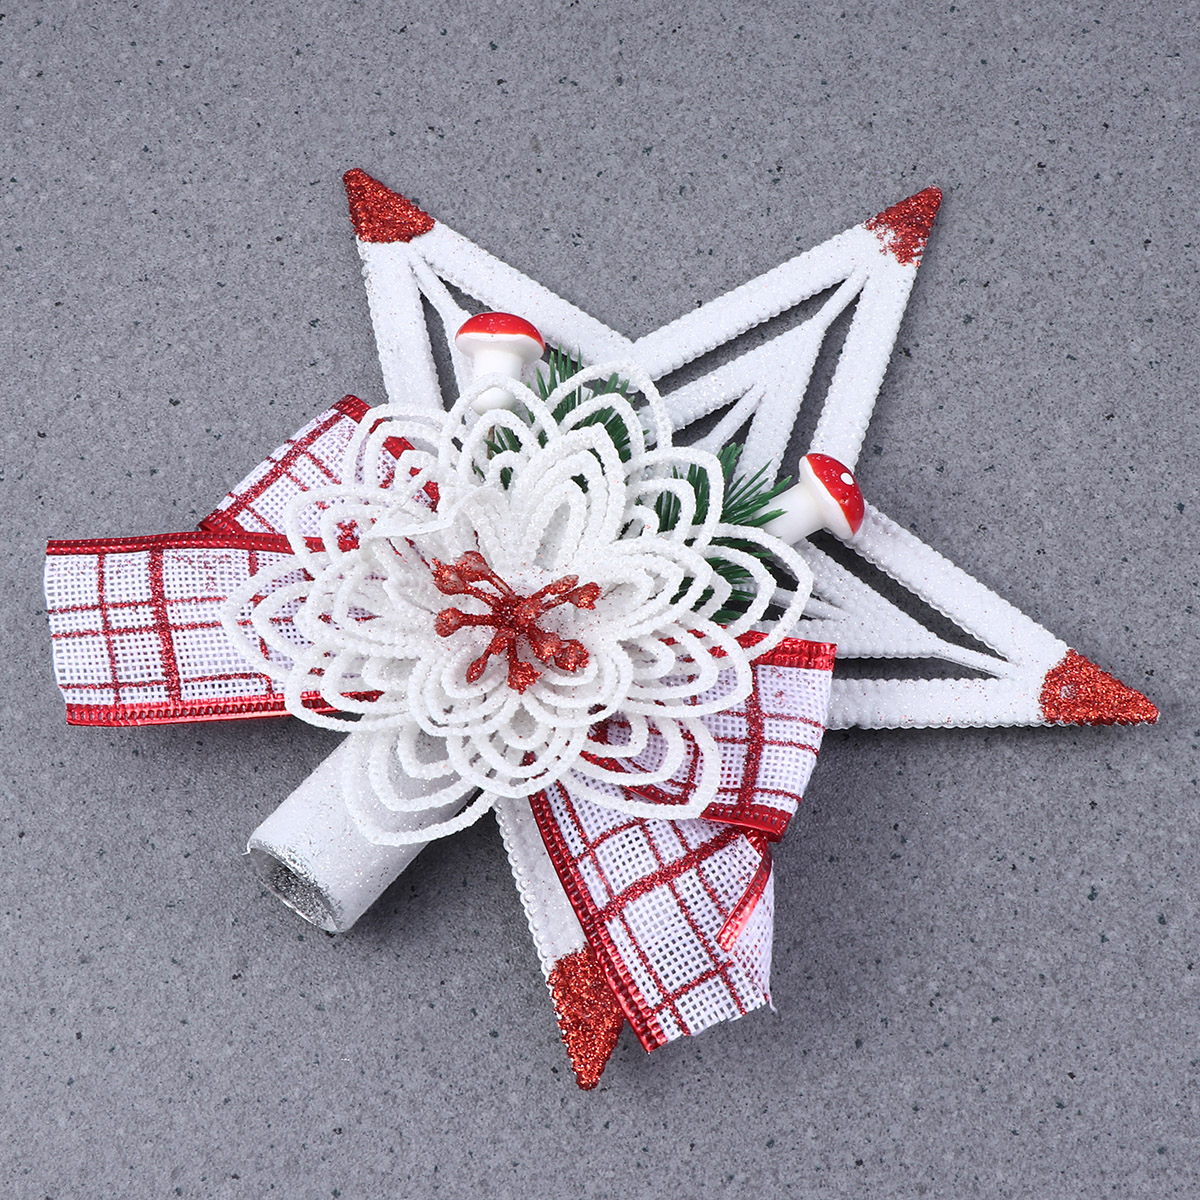 2 pcs Christmas Tree Topper Sparkle Star Plastic Shiny Ornament Christmas Tree Ornaments Xmas New Year Gift for Home in Tree Toppers from Home Garden